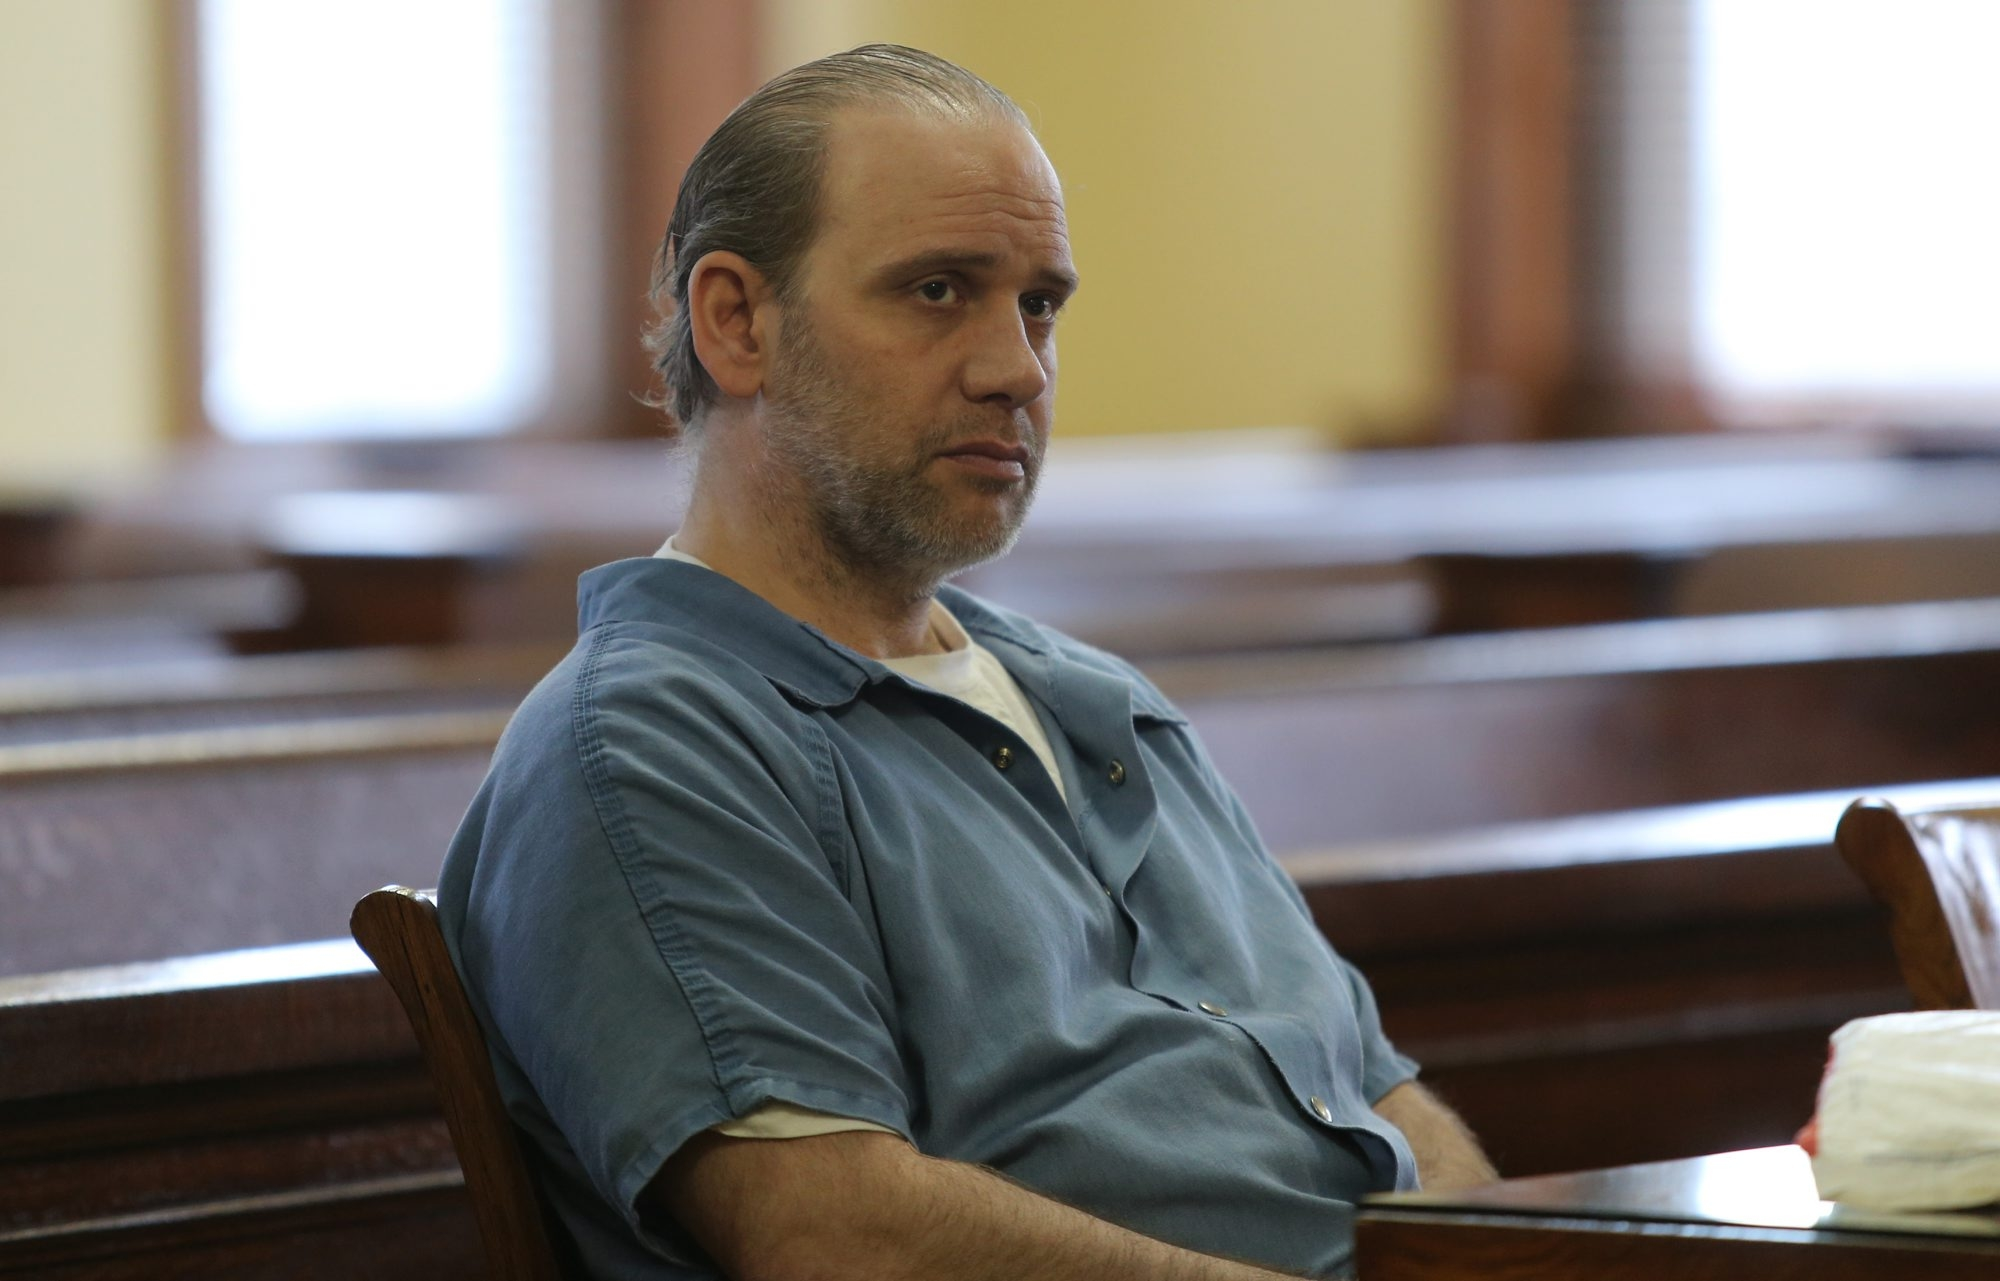 Timothy C. DePetris appears at the Niagara County Courthouse in Lockport in 2014. (Buffalo News file photo)